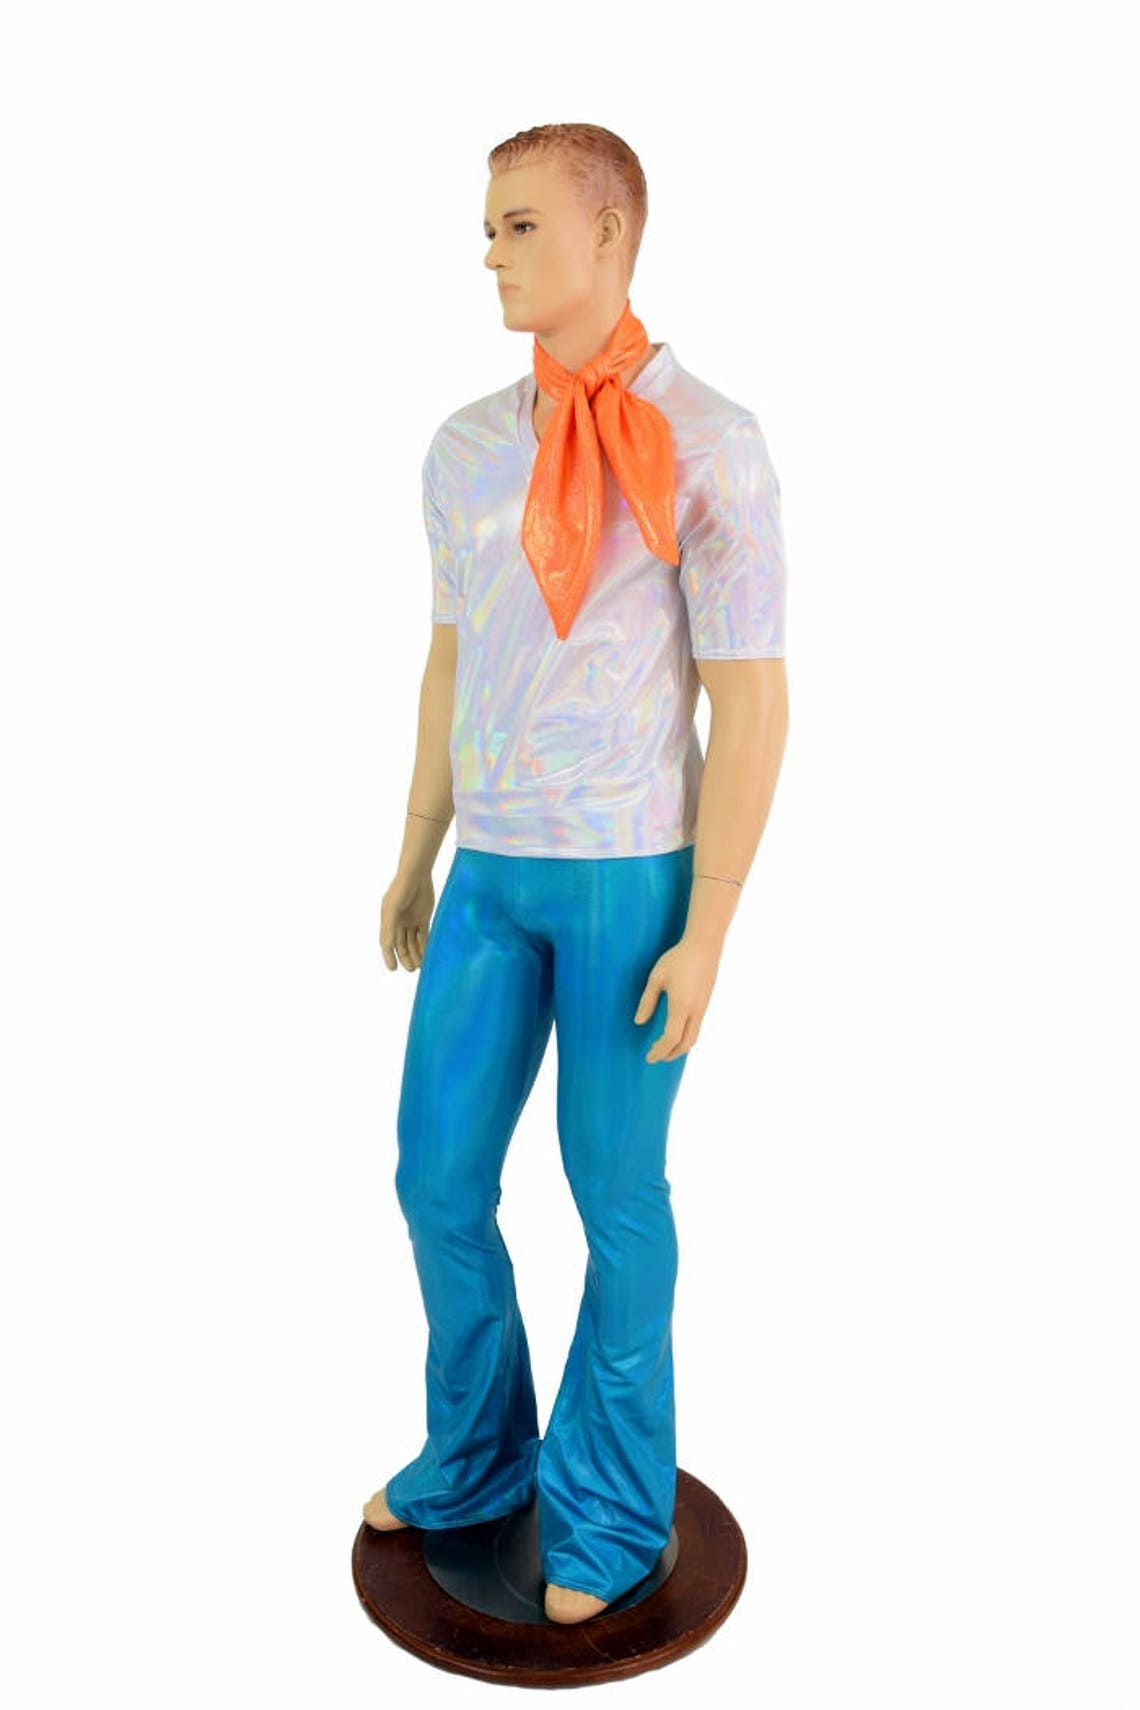 70s Costumes: Disco Costumes, Hippie Outfits 70s Super Sleuth Set Mens Flashbulb Holographic V Neck Short Sleeve Top & Peacock Blue Bootcut Pants w/Orange Sparkly Jewel Ascot 154783 $110.00 AT vintagedancer.com